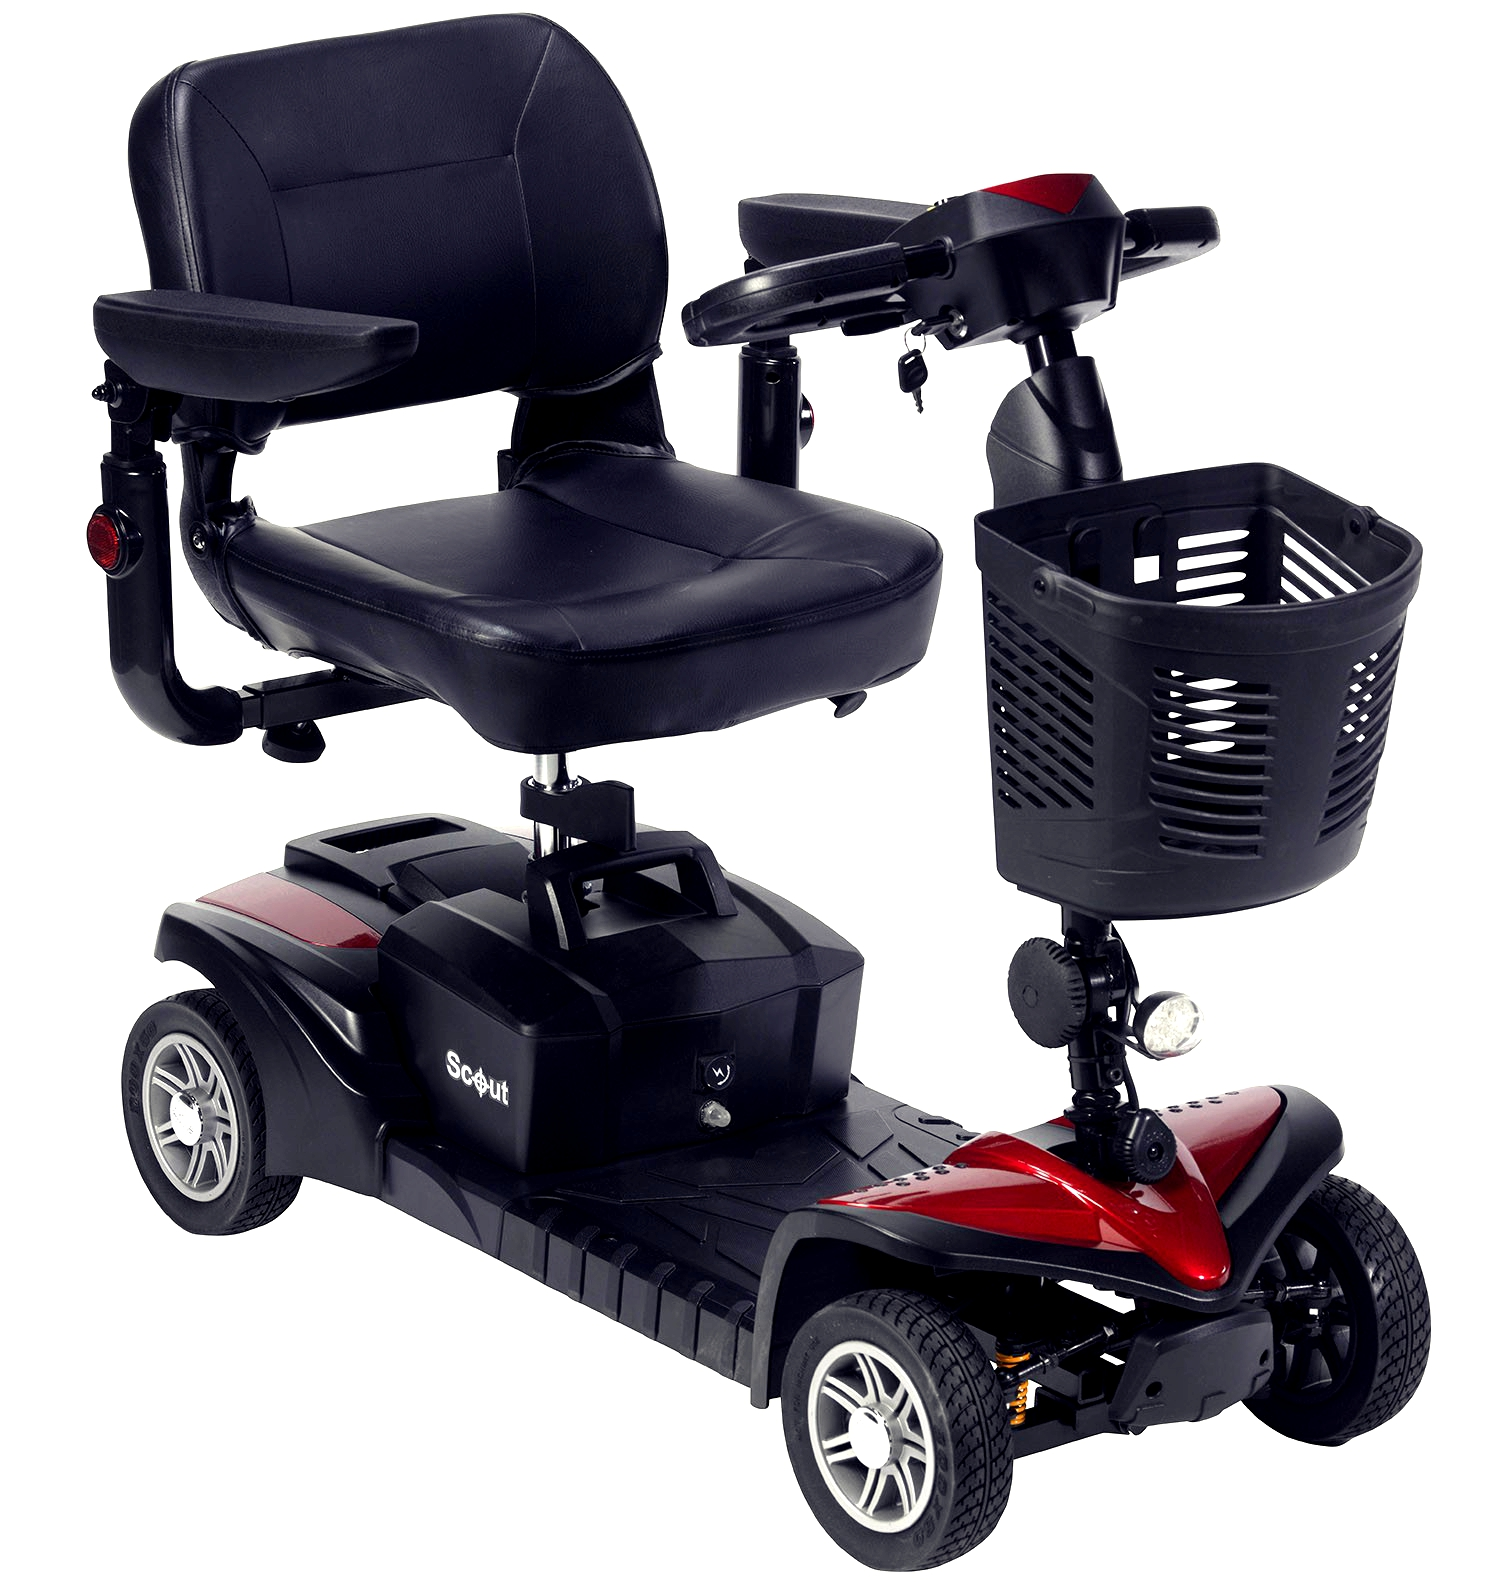 Sout Scooter